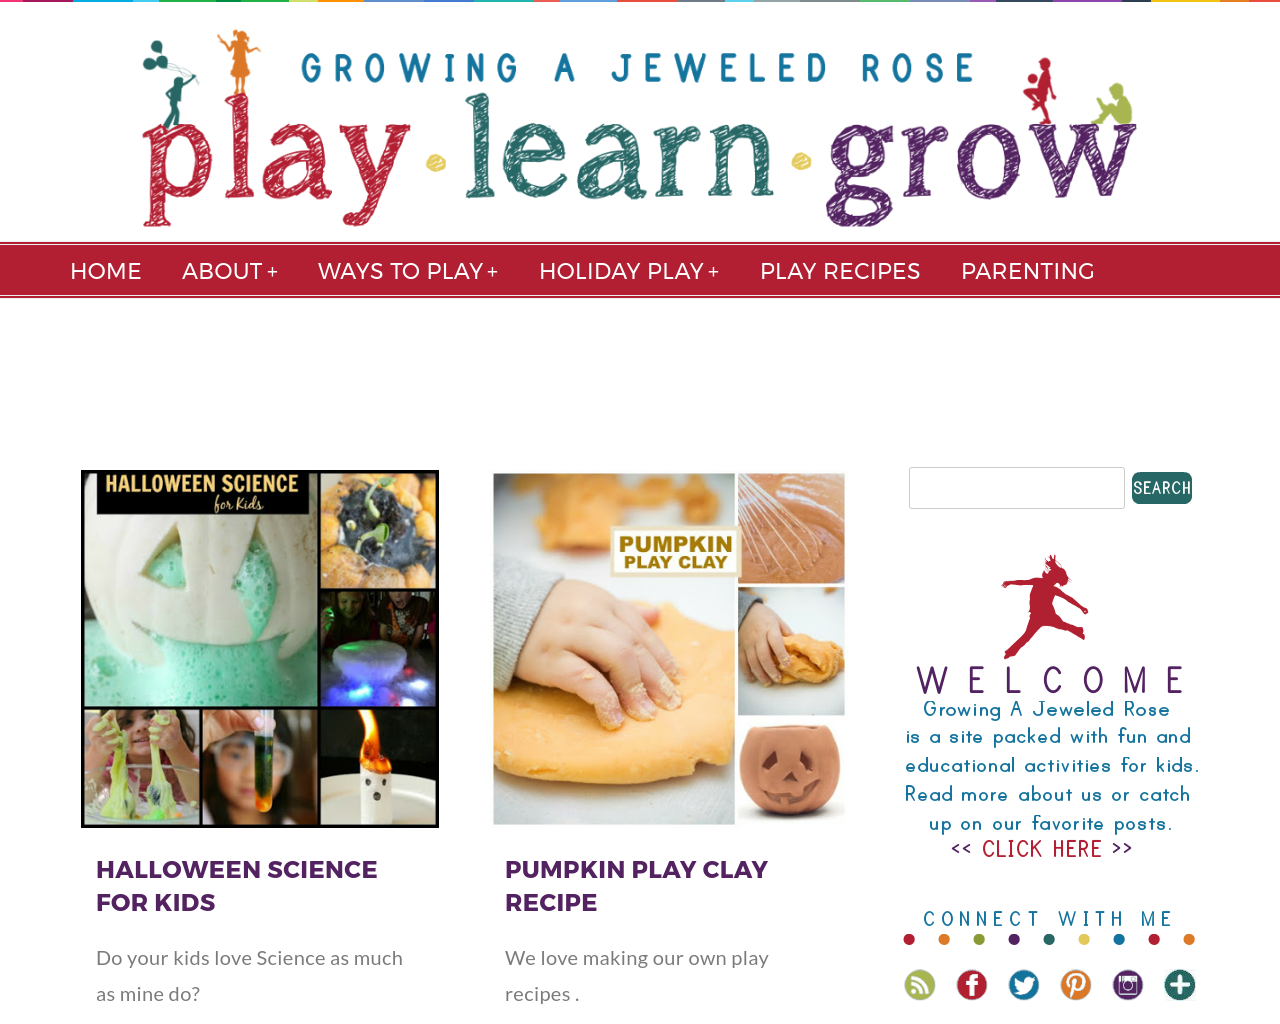 Growing-A-Jeweled-Rose-Advertising-Reviews-Pricing